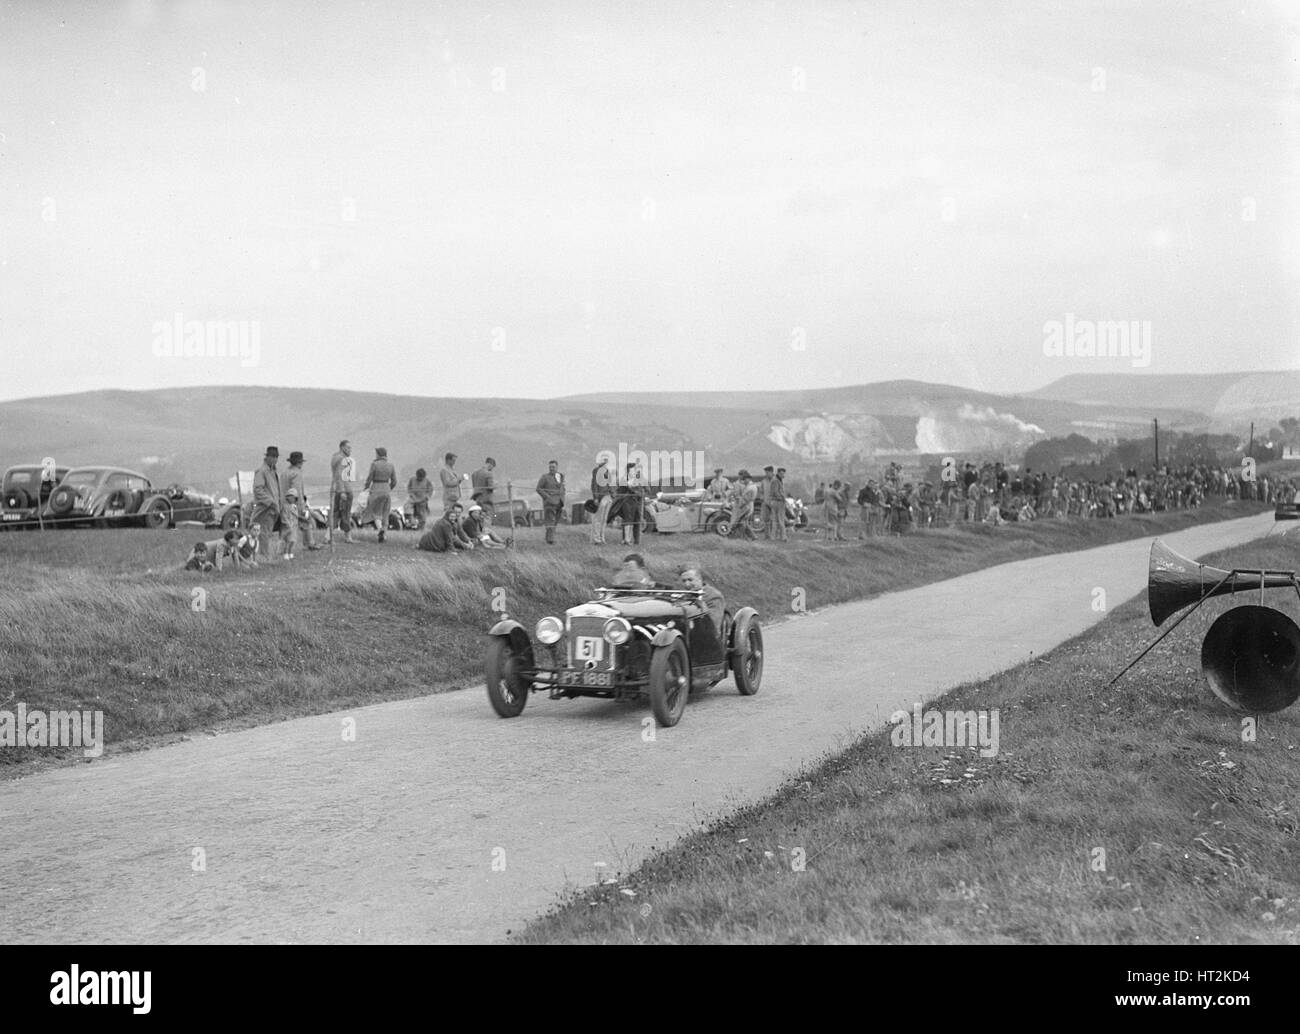 1926 Frazer-Nash of JG Clarke competing at the Lewes Speed Trials, Sussex, 1938. Artist: Bill Brunell. - Stock Image